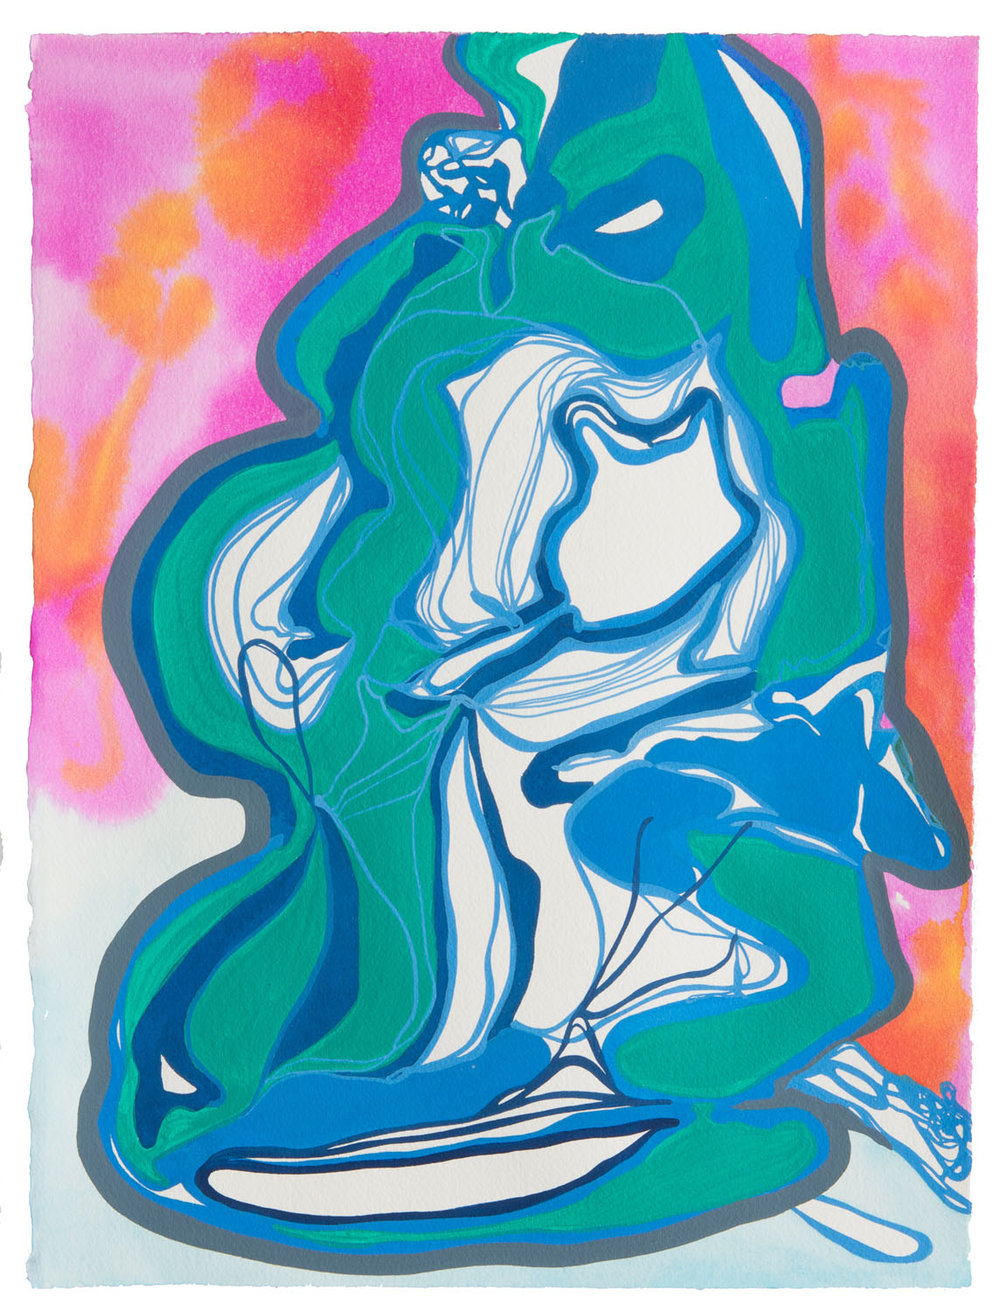 untitled c, 2017 15 x 11 1/2 inches gouache on paper 100-103